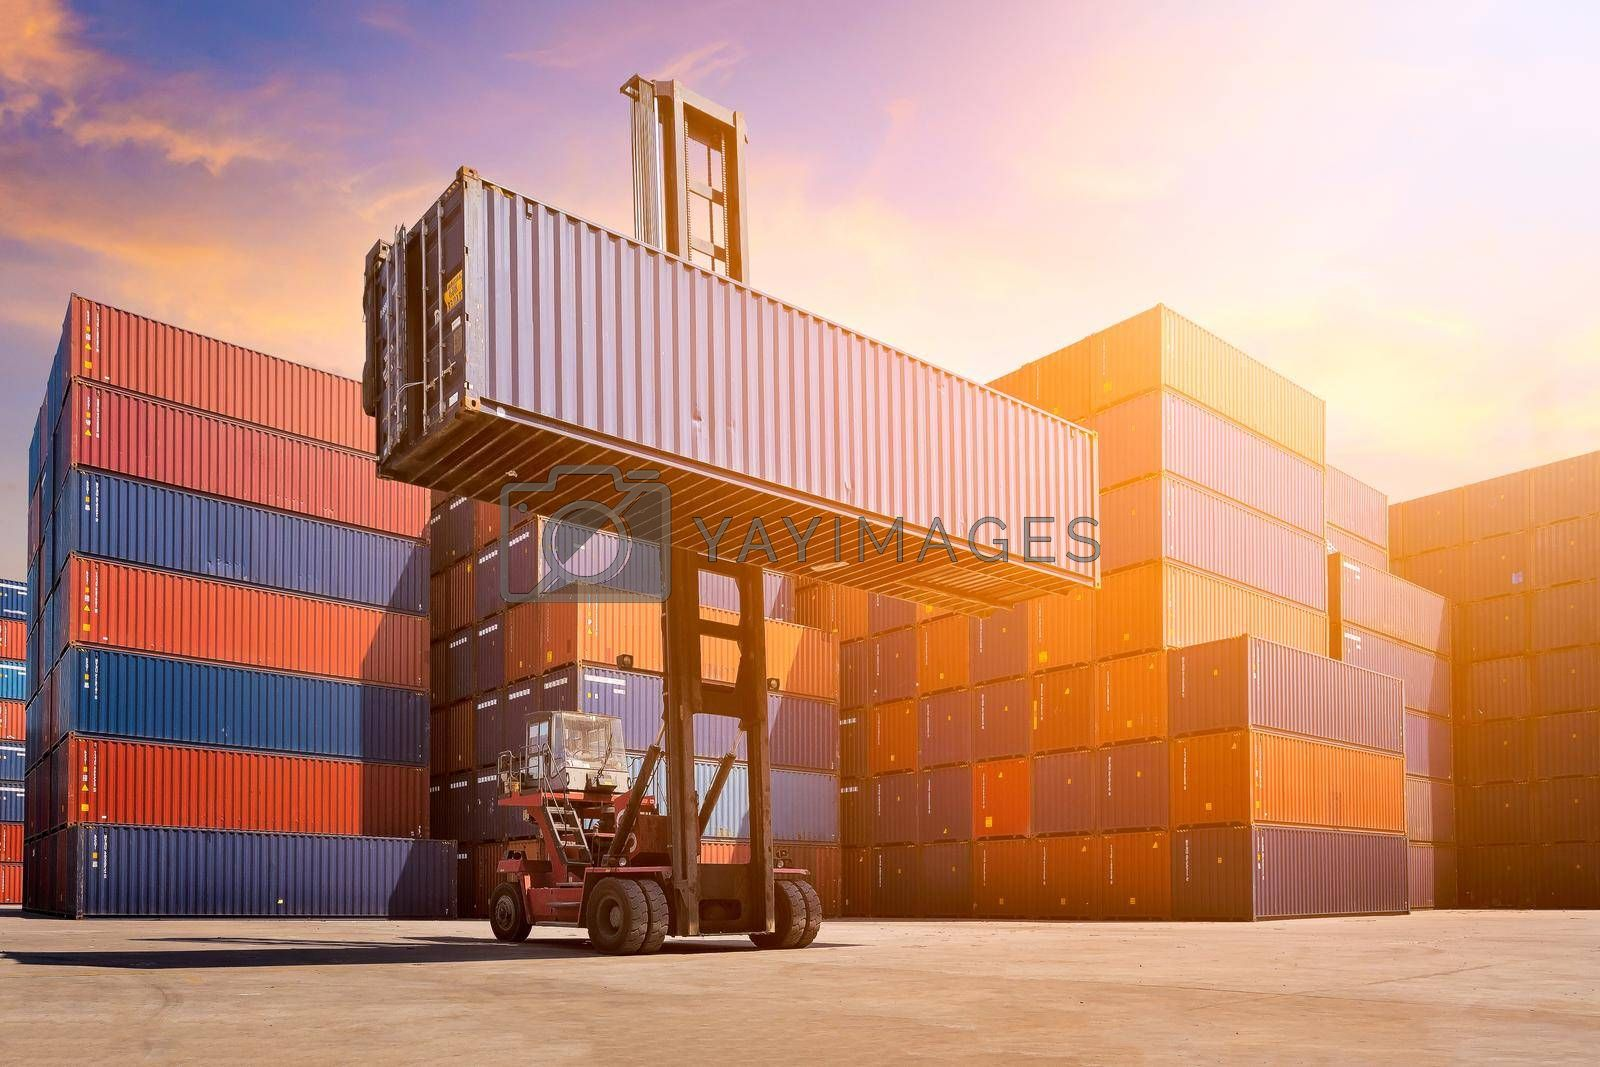 Logistic cargo container in shipping yard with cargo container stack in background. Photo concept for Global business shipping,Logistic,Import and Export industries.